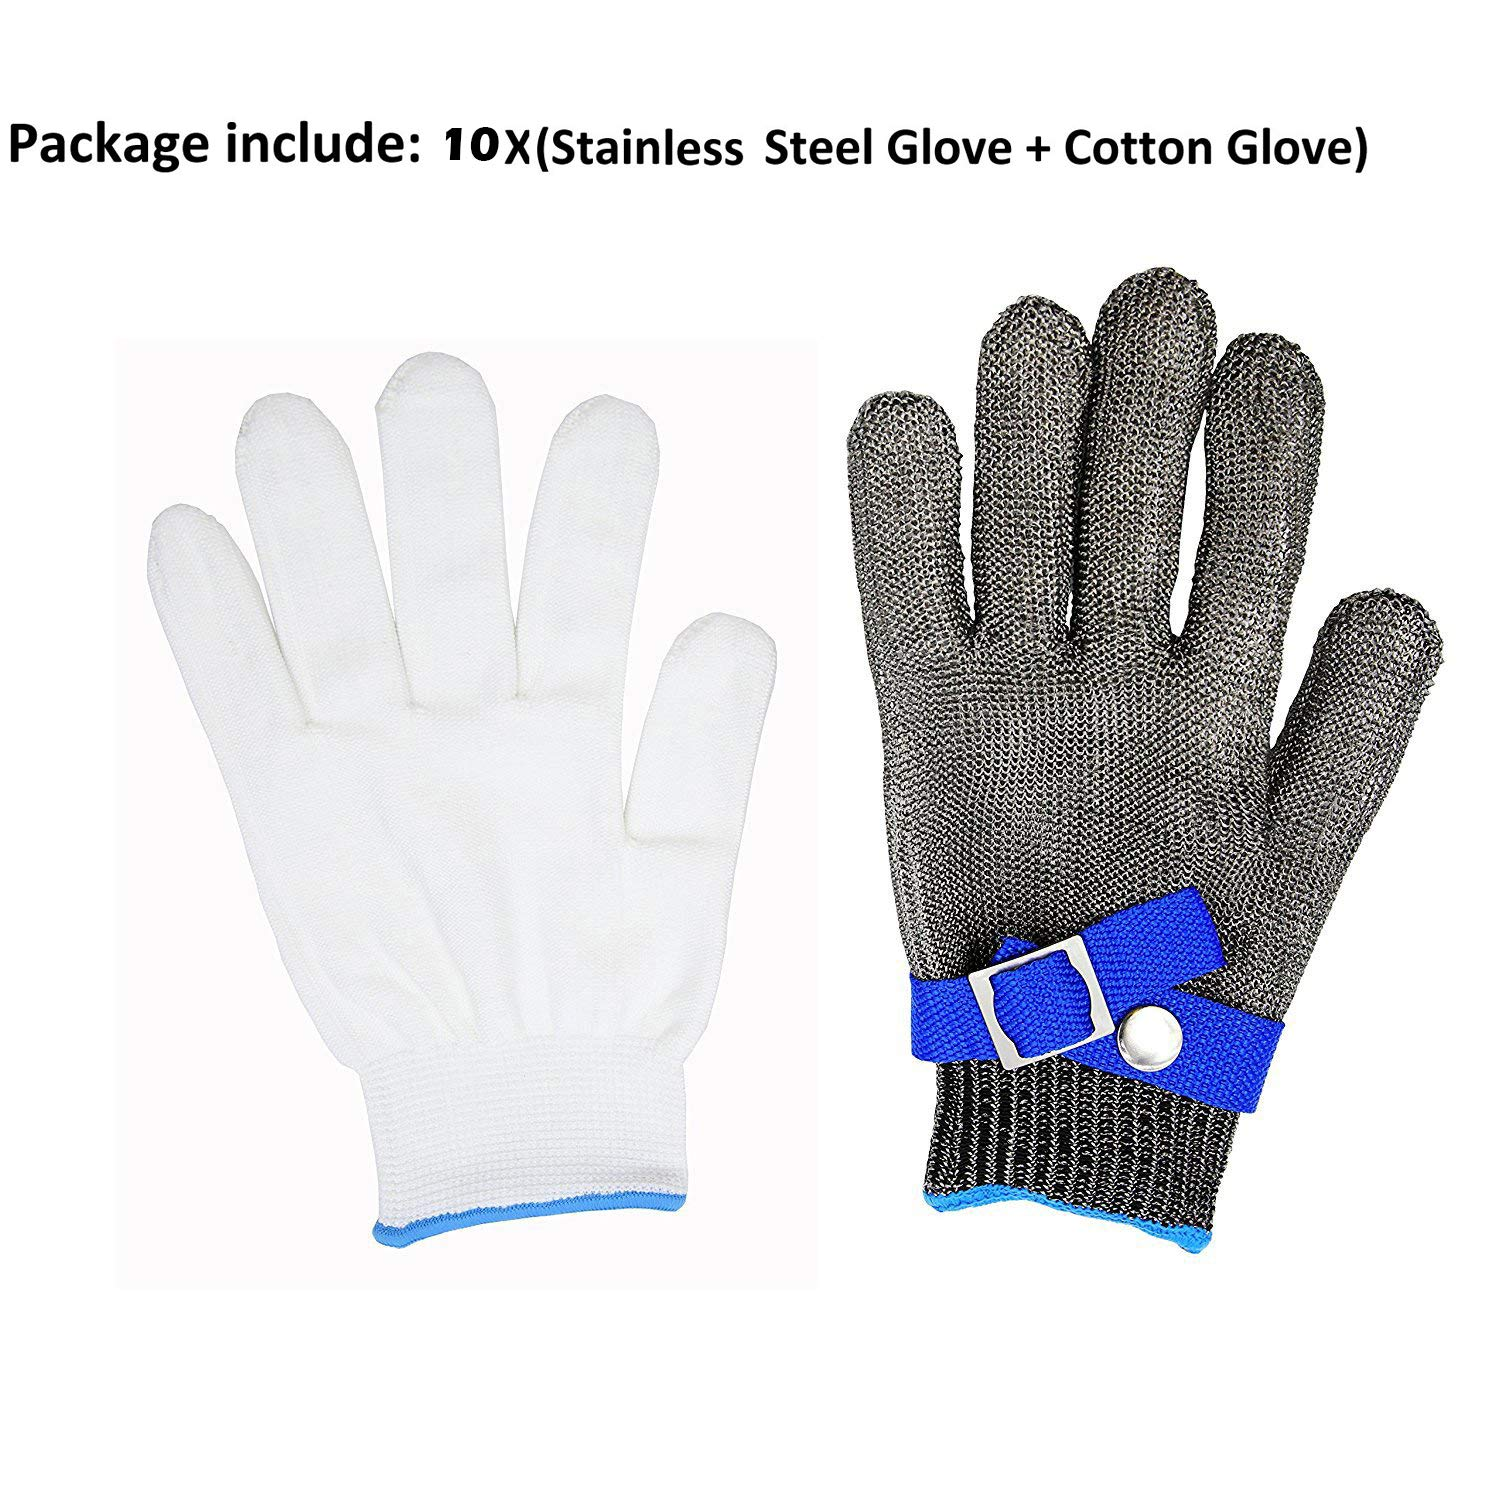 Safety Cut Proof Stab Resistant 316L Stainless Steel Wire Butcher Glove High Performance Level 5 Protection Size M by cleanpower (Image #6)